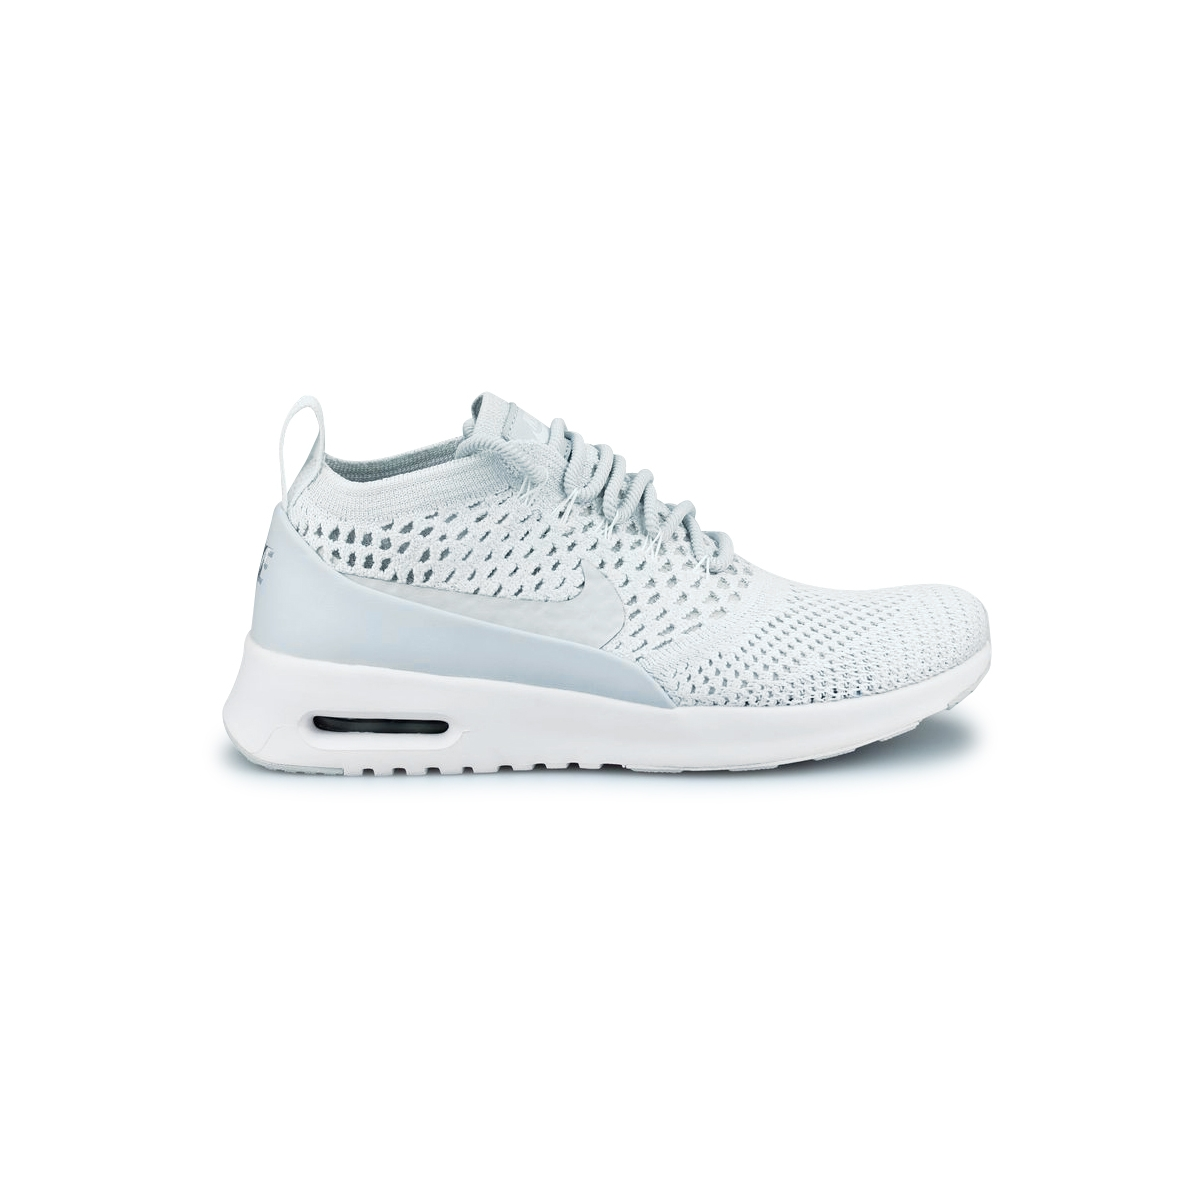 size 40 c1cf2 0ed75 WMNS NIKE AIR MAX THEA ULTRA FK PLATINE 881175-002